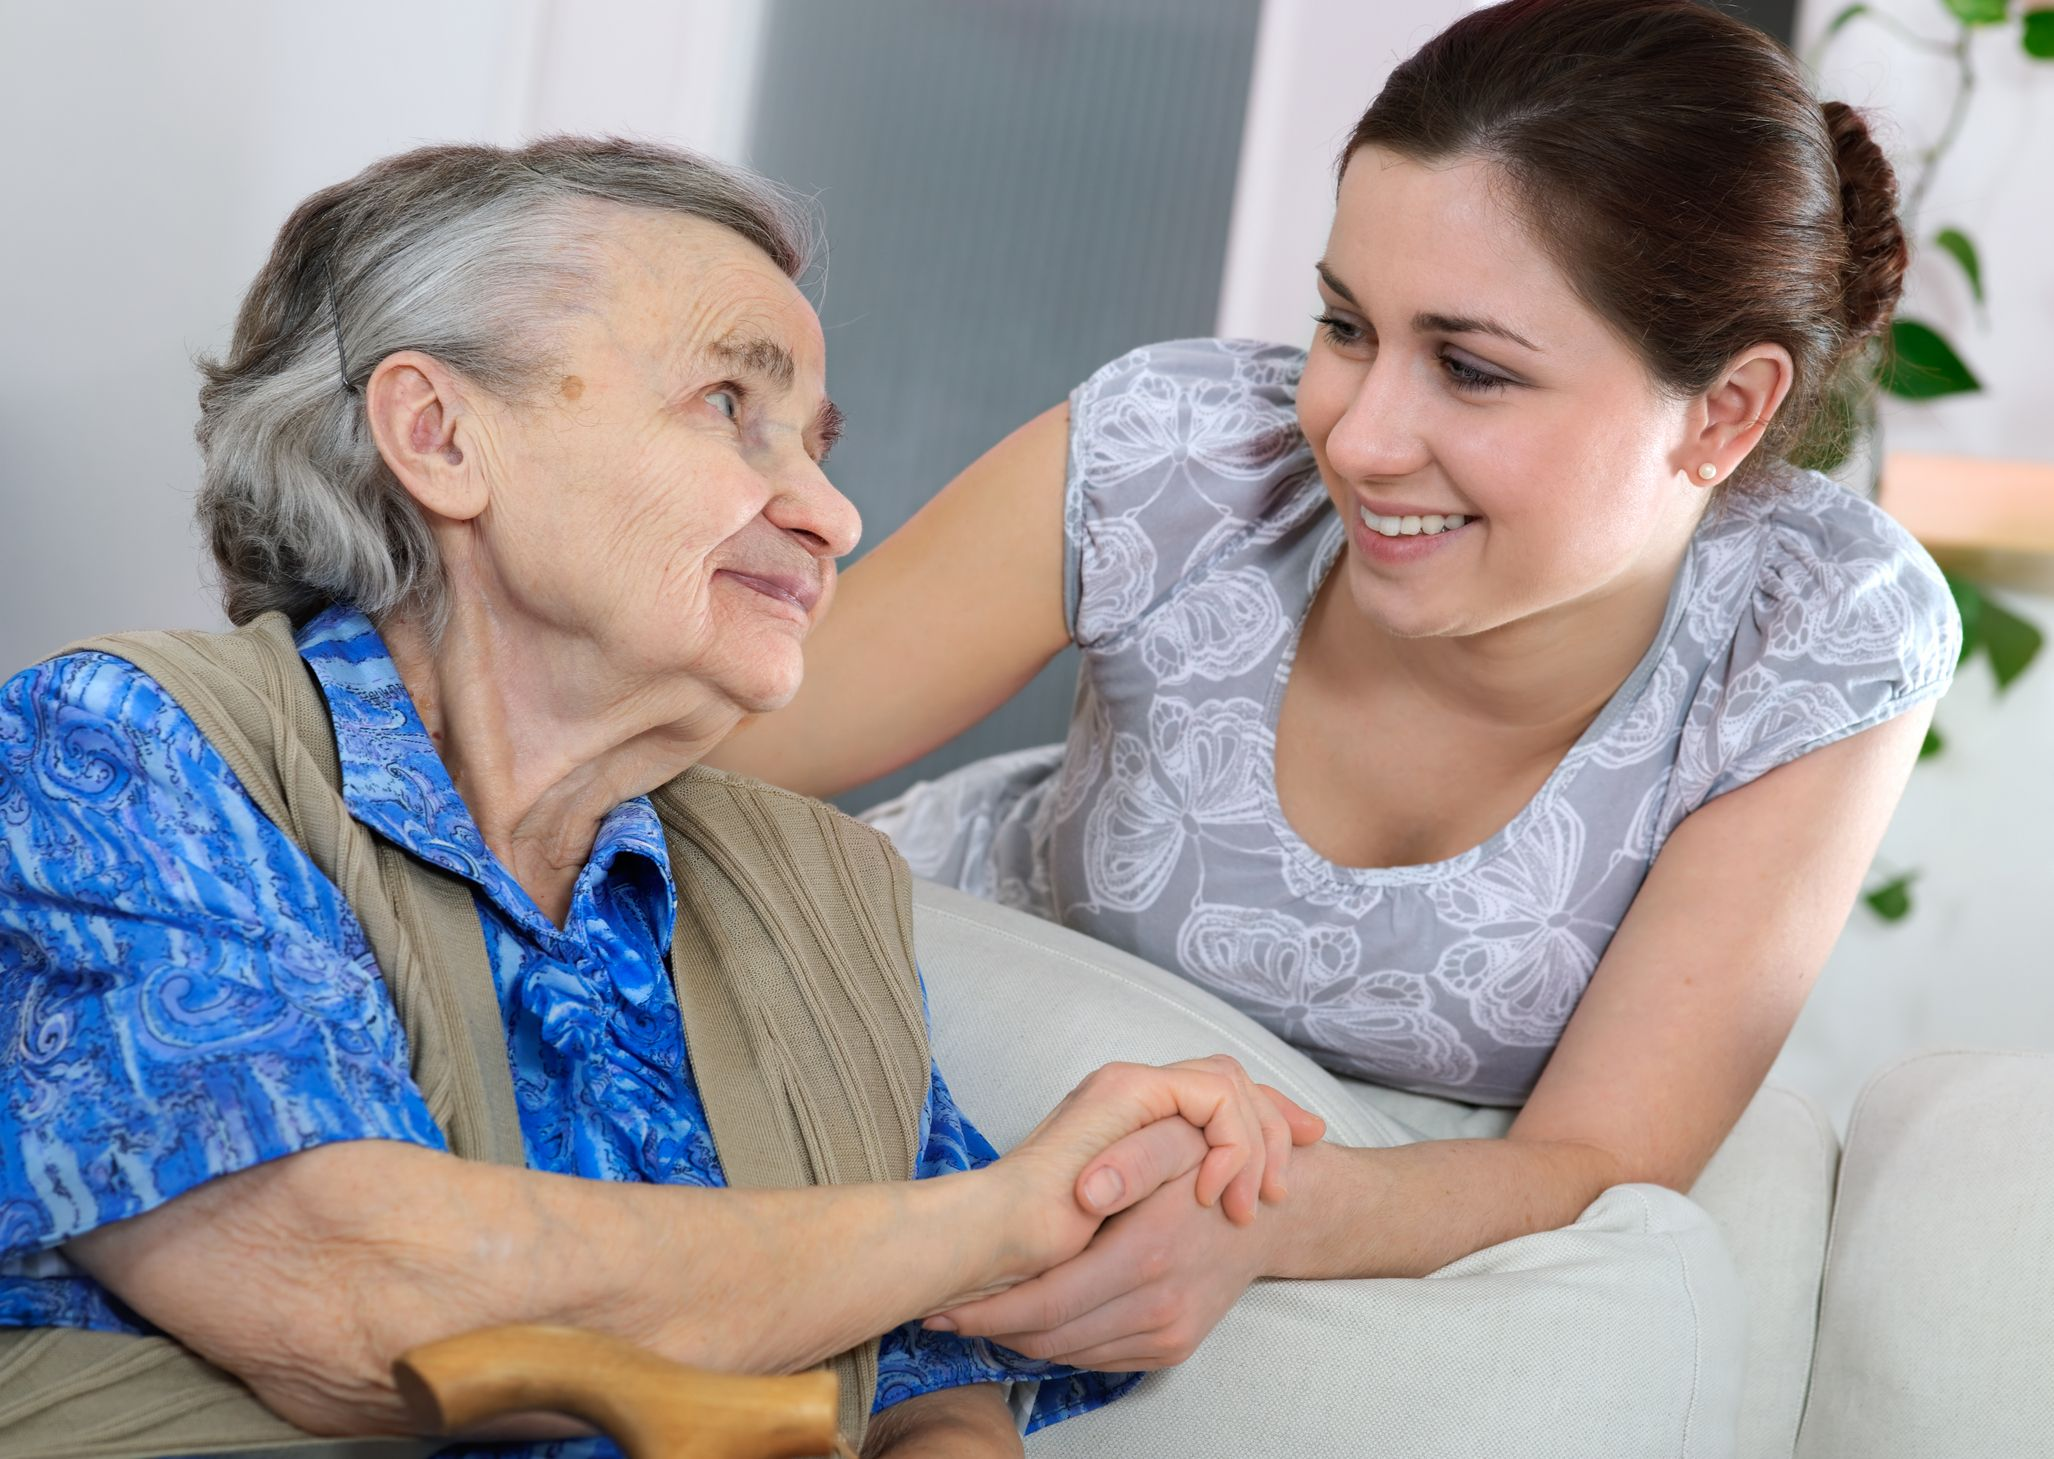 Senior Helpers of Central TX provides caregivers and home care for seniors  and others in Central